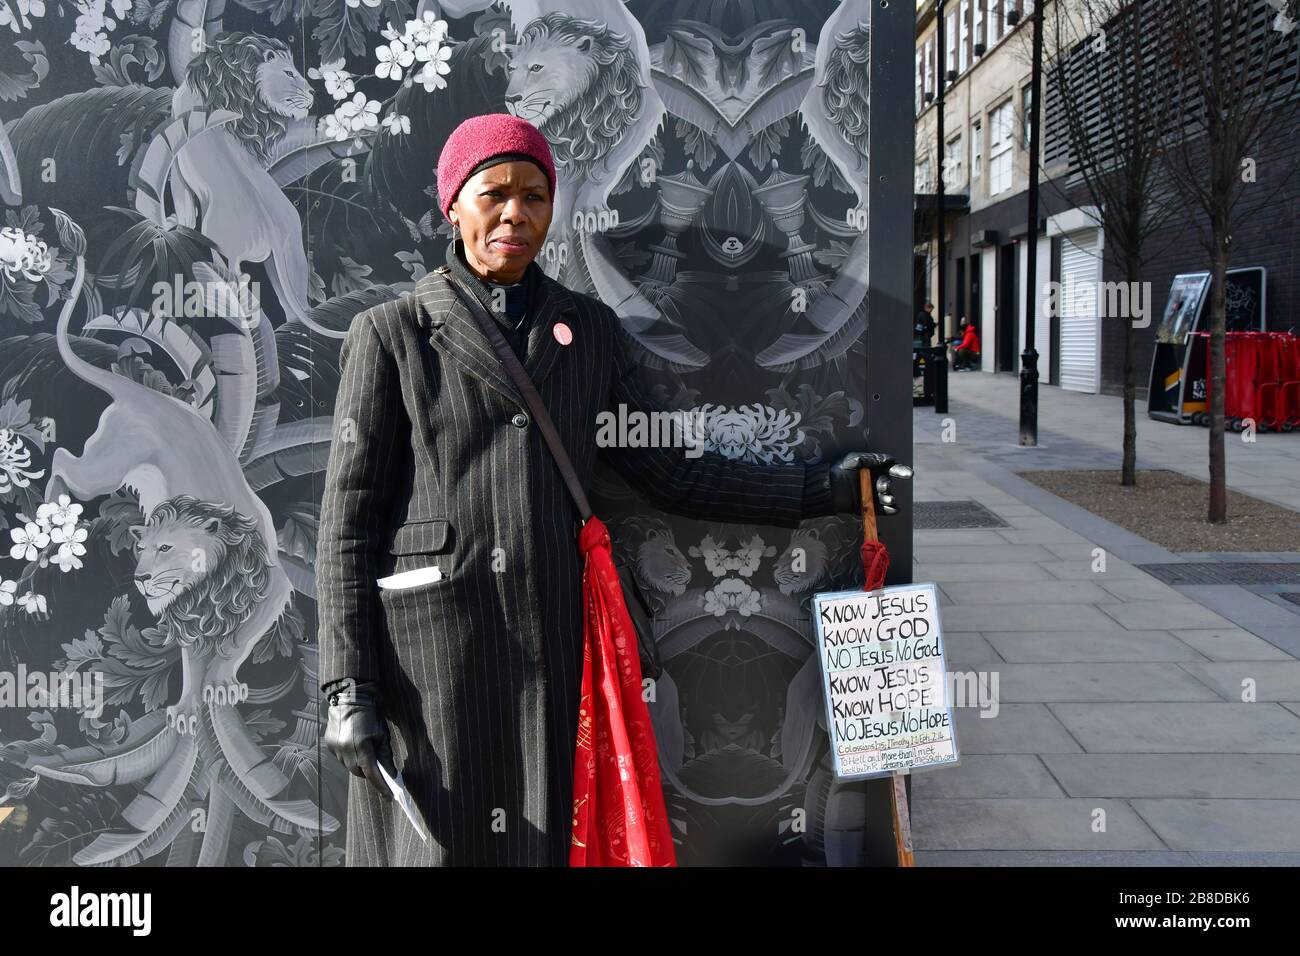 London, UK. 21st March 2020. A Christian preaching without mask at street during Coronavirus - Pandemic hit Oxford Street many shops closure a few open but empty on 21 March 2020, UK. Credit: Picture Capital/Alamy Live News Stock Photo